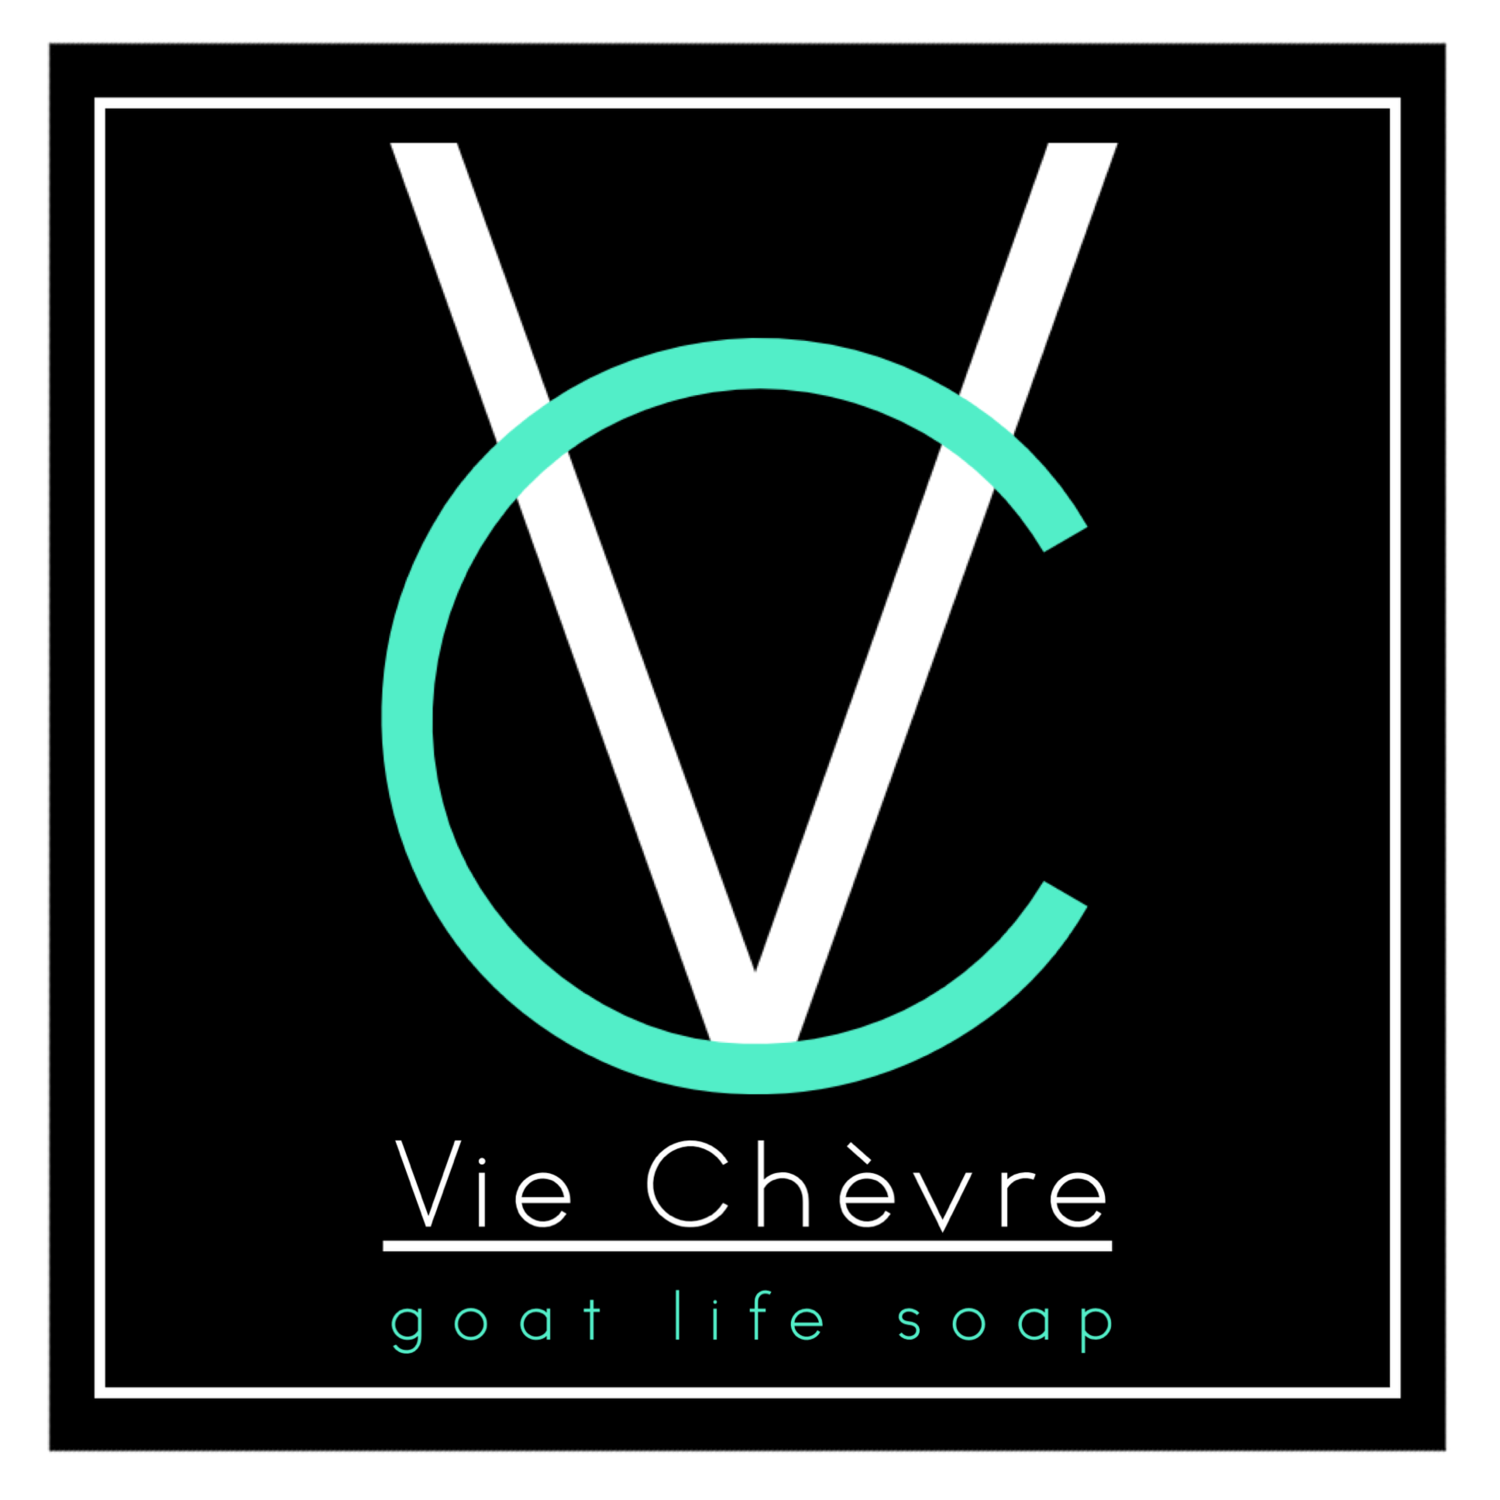 Vie Chevre - Goat Life Soap Co.